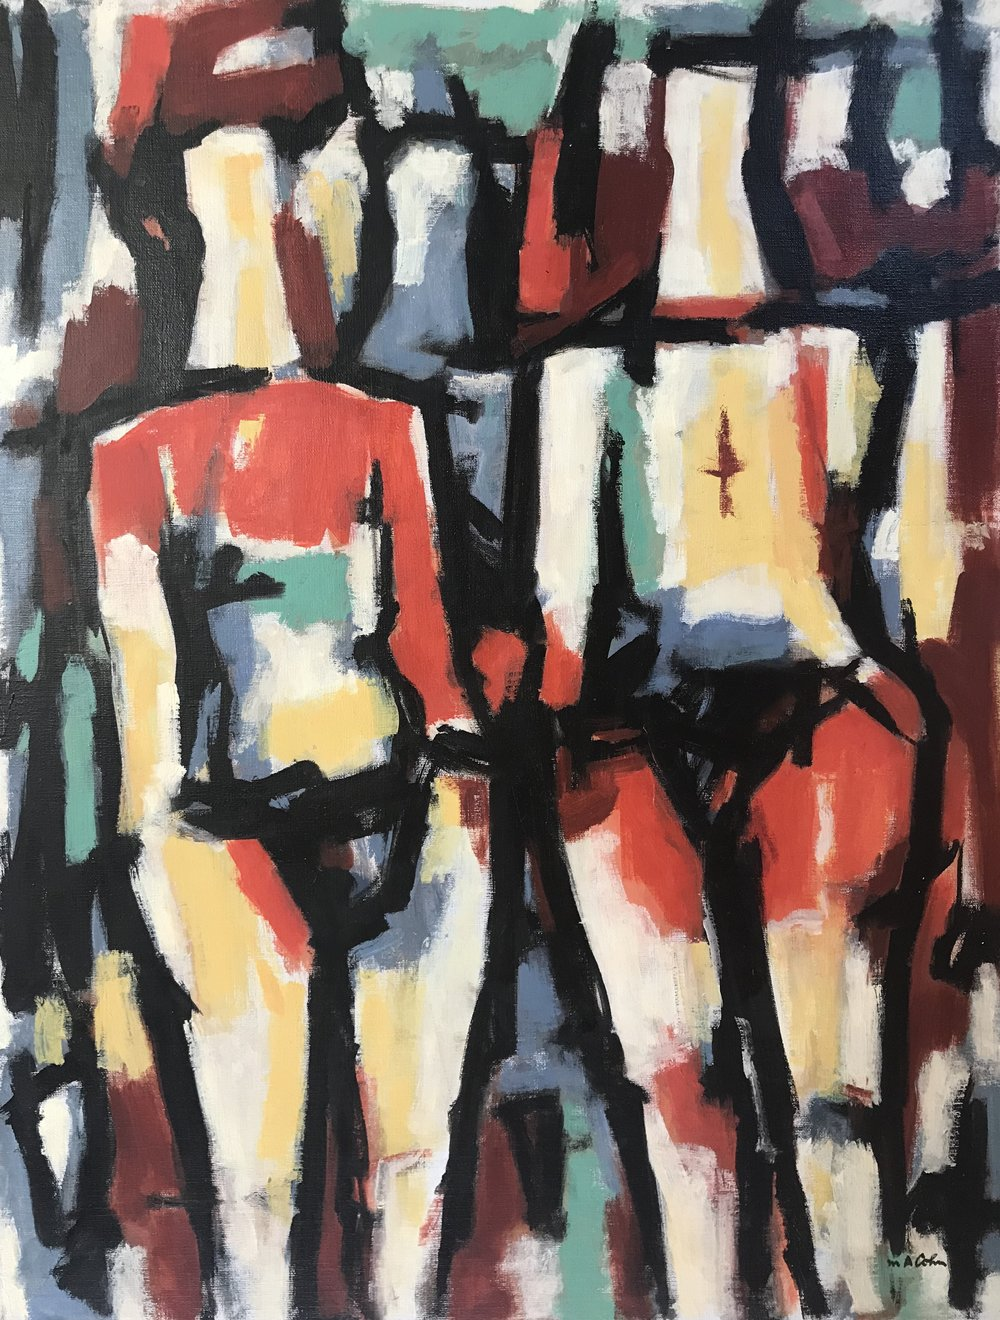 "Two Figures 659-1977 by Max Arthur Cohn 22"" x 28"" Oil on Canvas 1977"